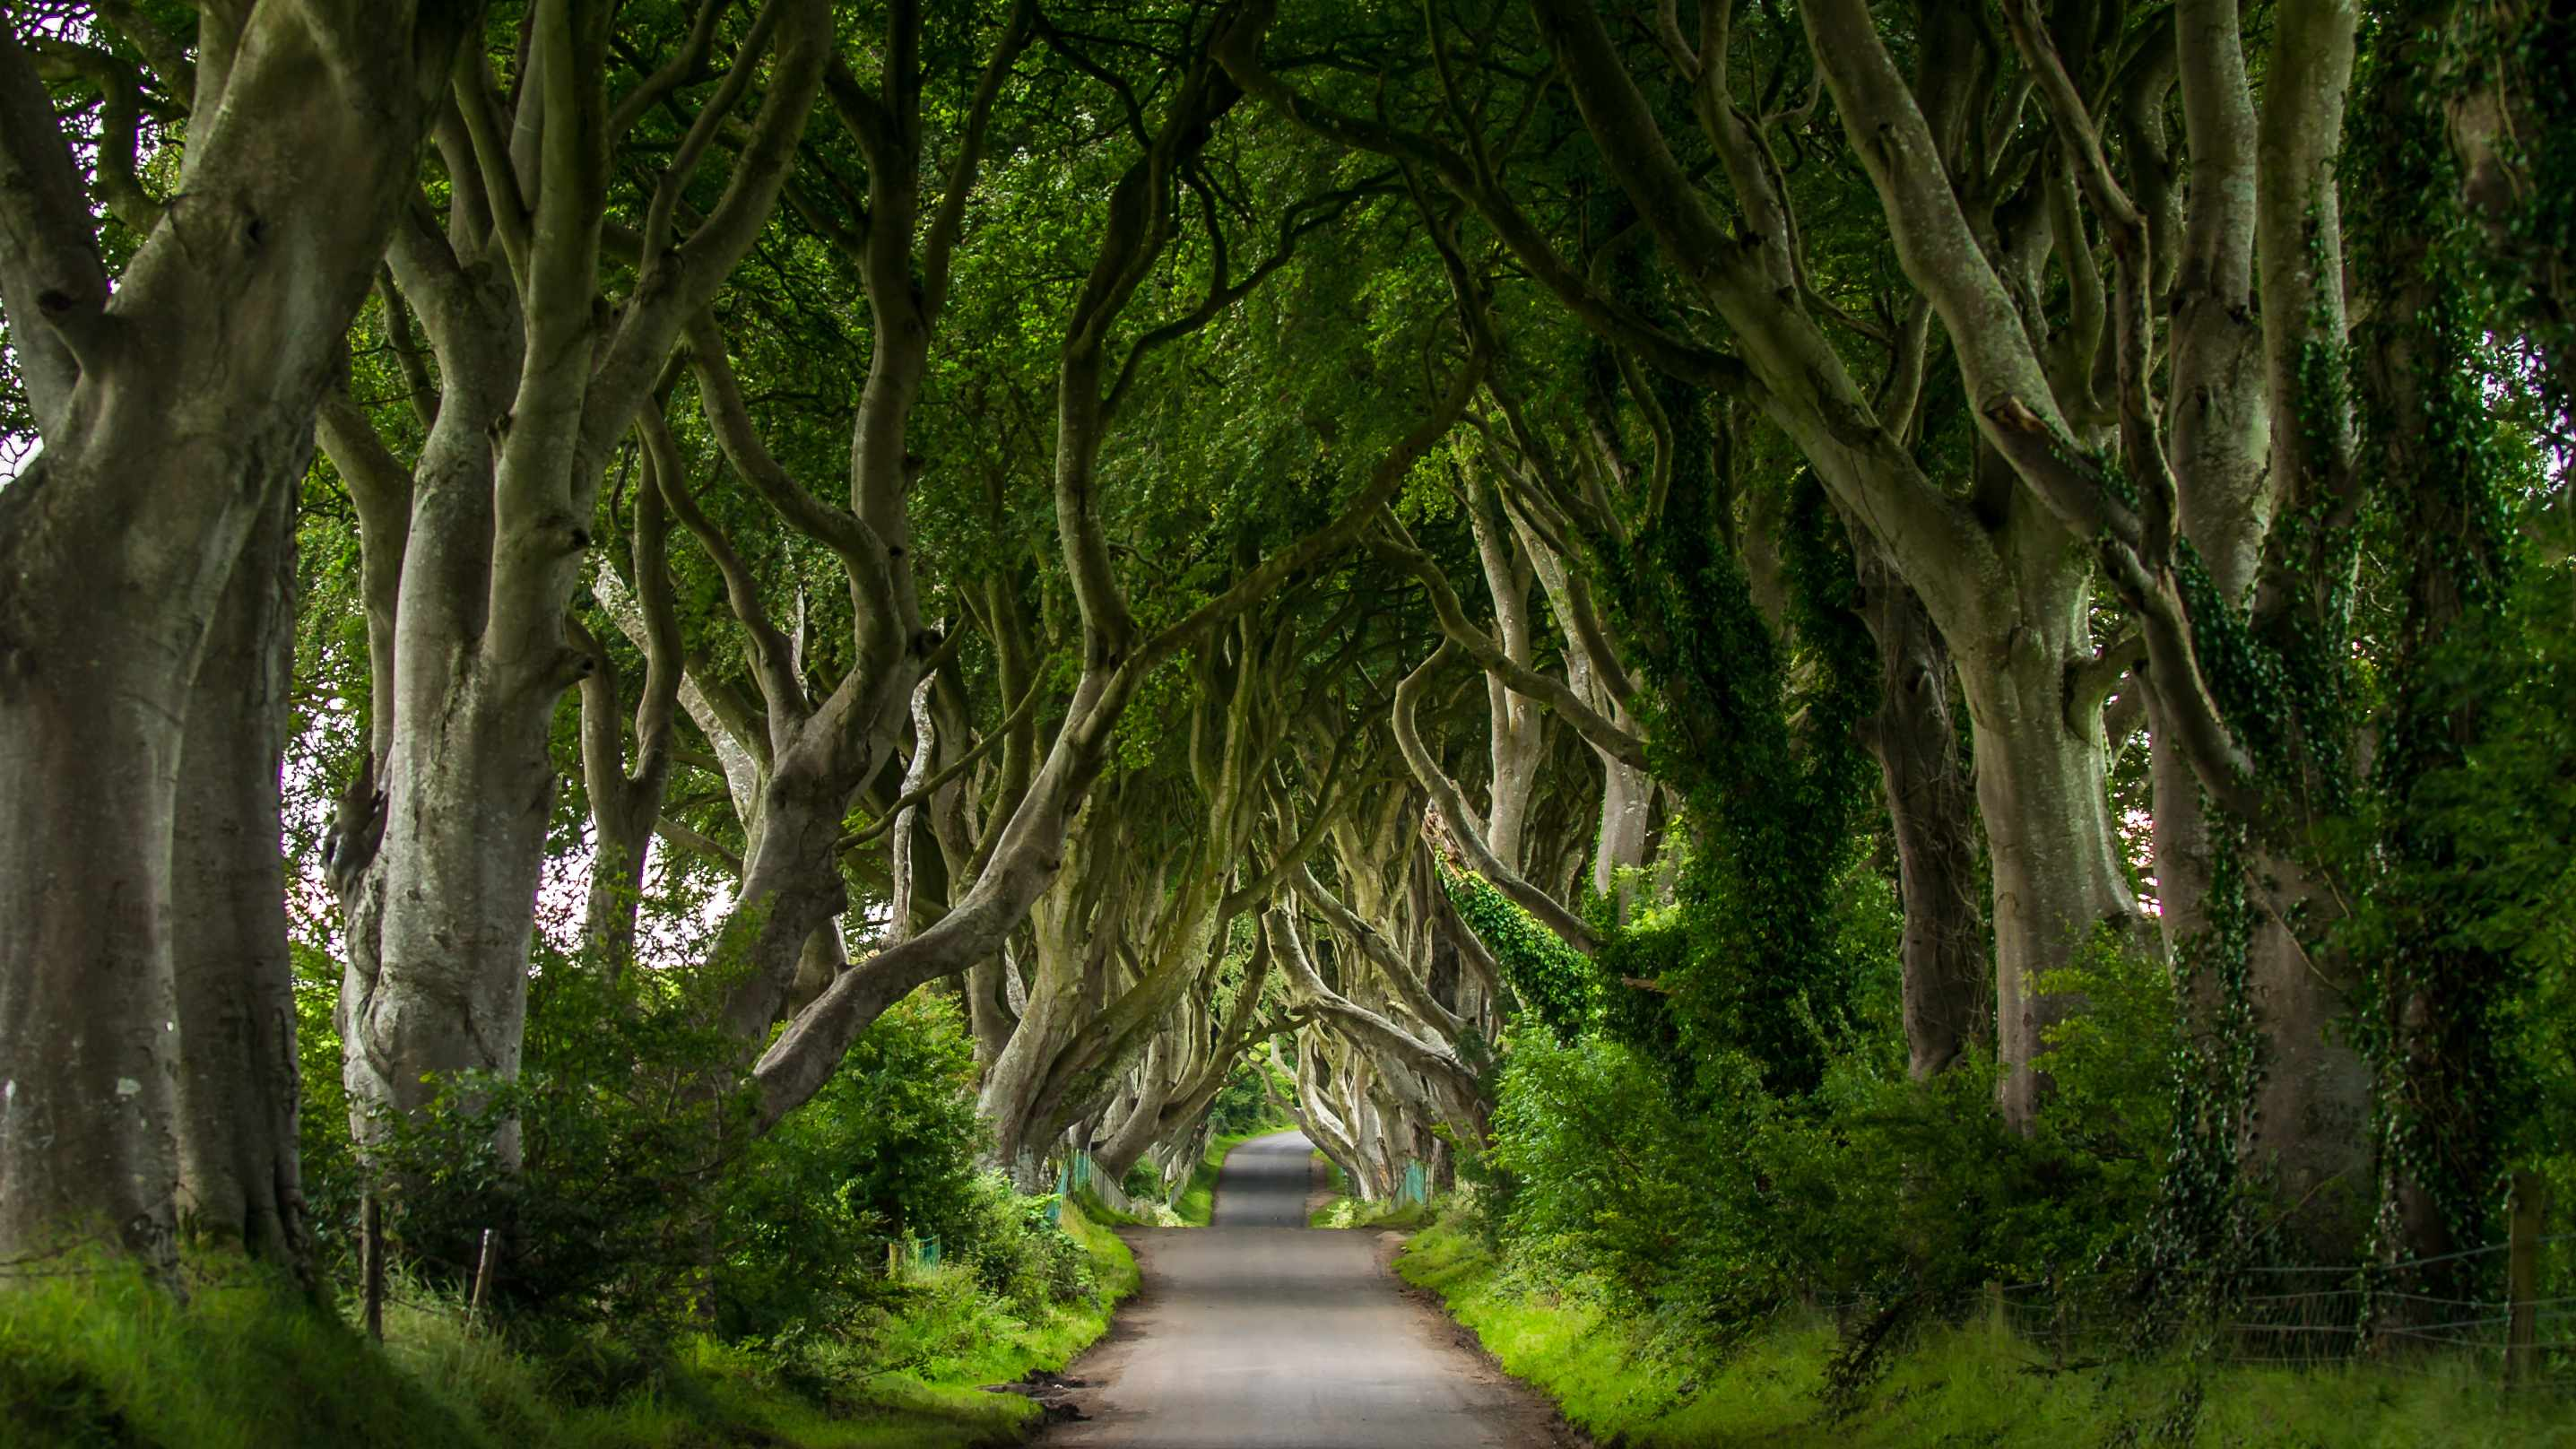 Dark Hedges Northern Ireland, unique looking roadway down a path of curving trees.